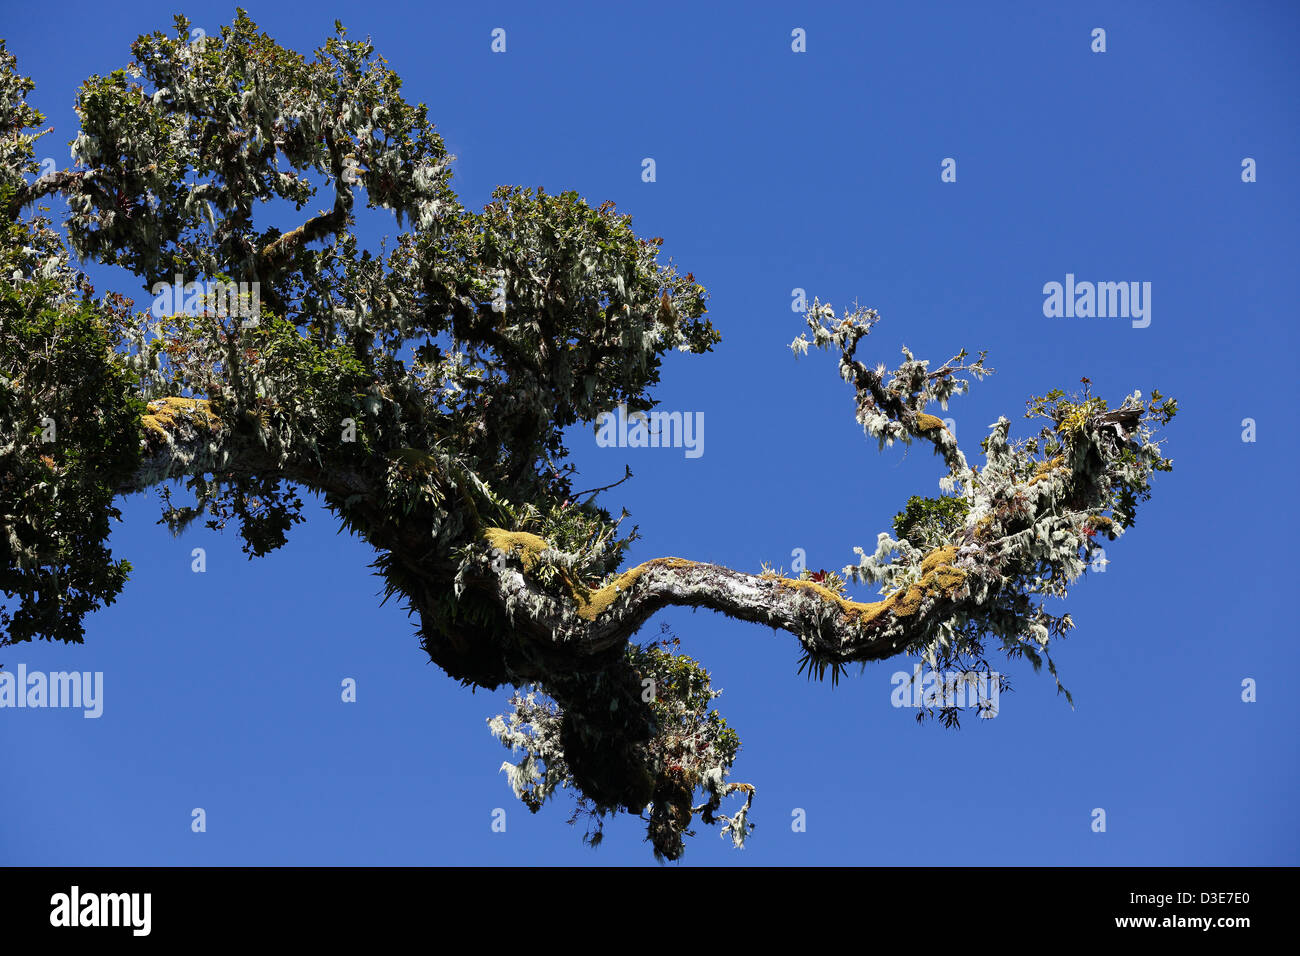 interesting rain forest tree branch, Parque Nacional Volcan Baru, Panama - Stock Image